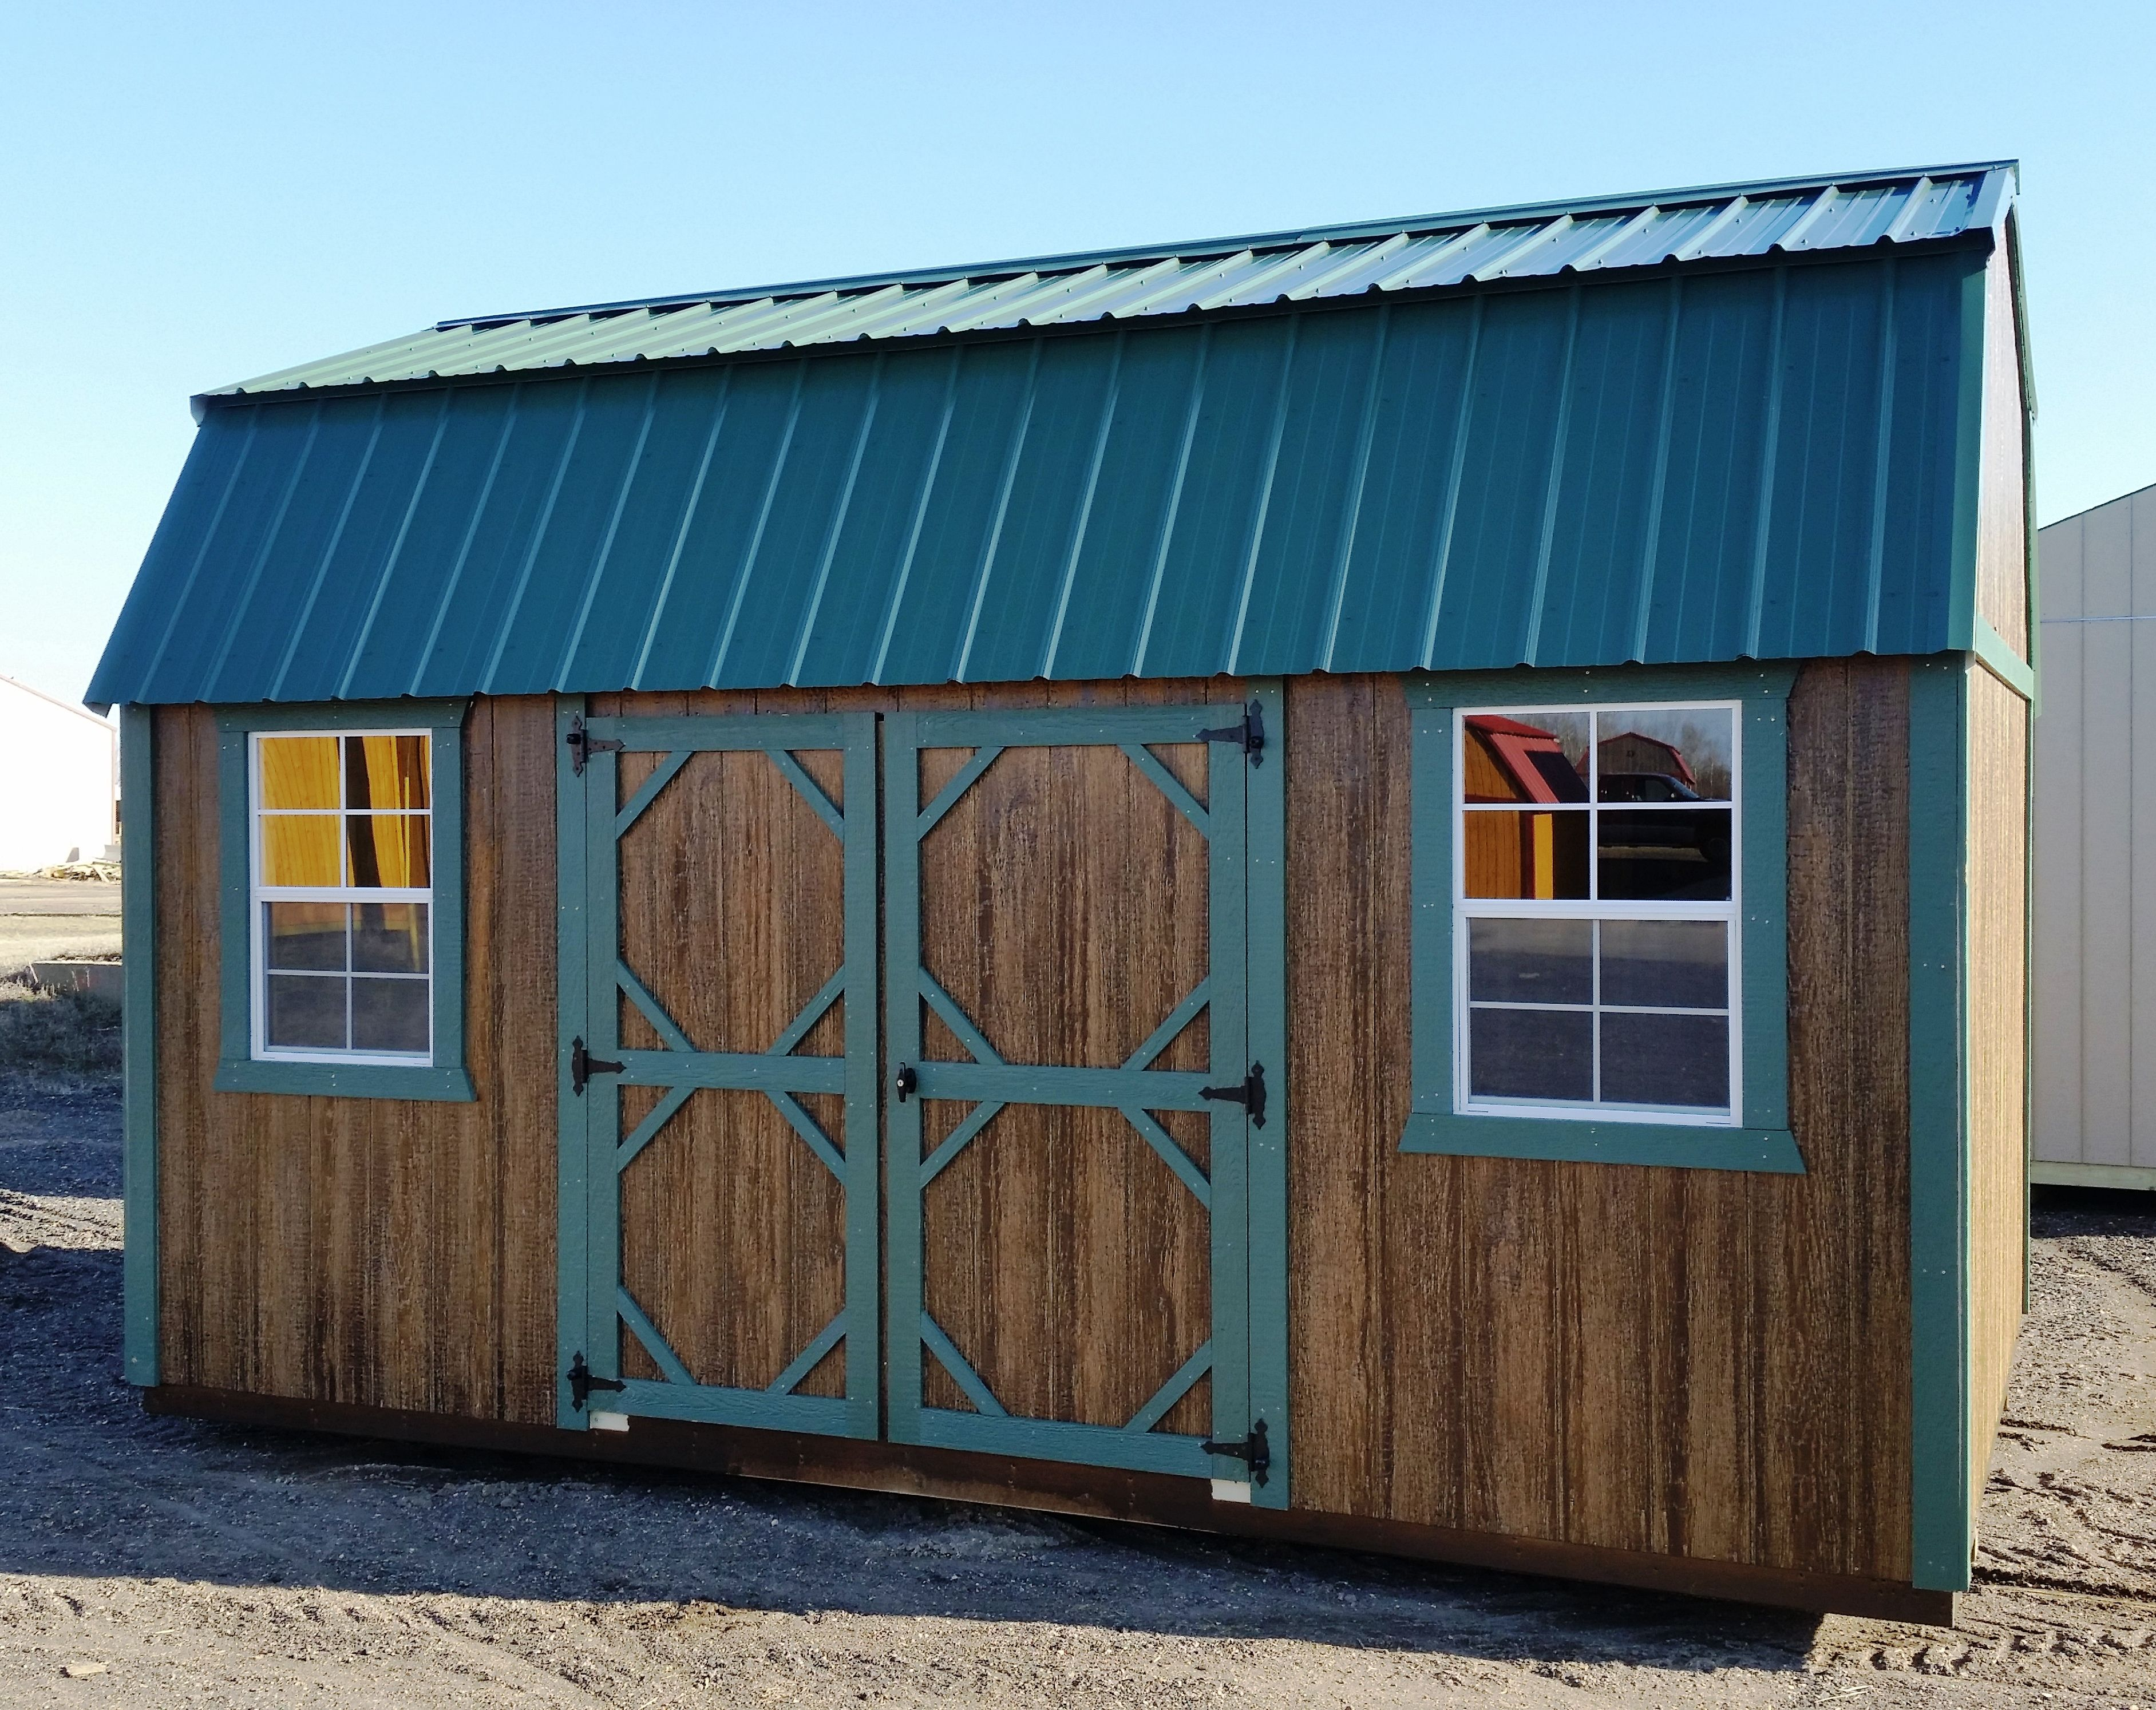 green metal roof with matching trim lp smartside siding stained with haley chestnut double wood doors and 2 windows minnesota made minnesota owned